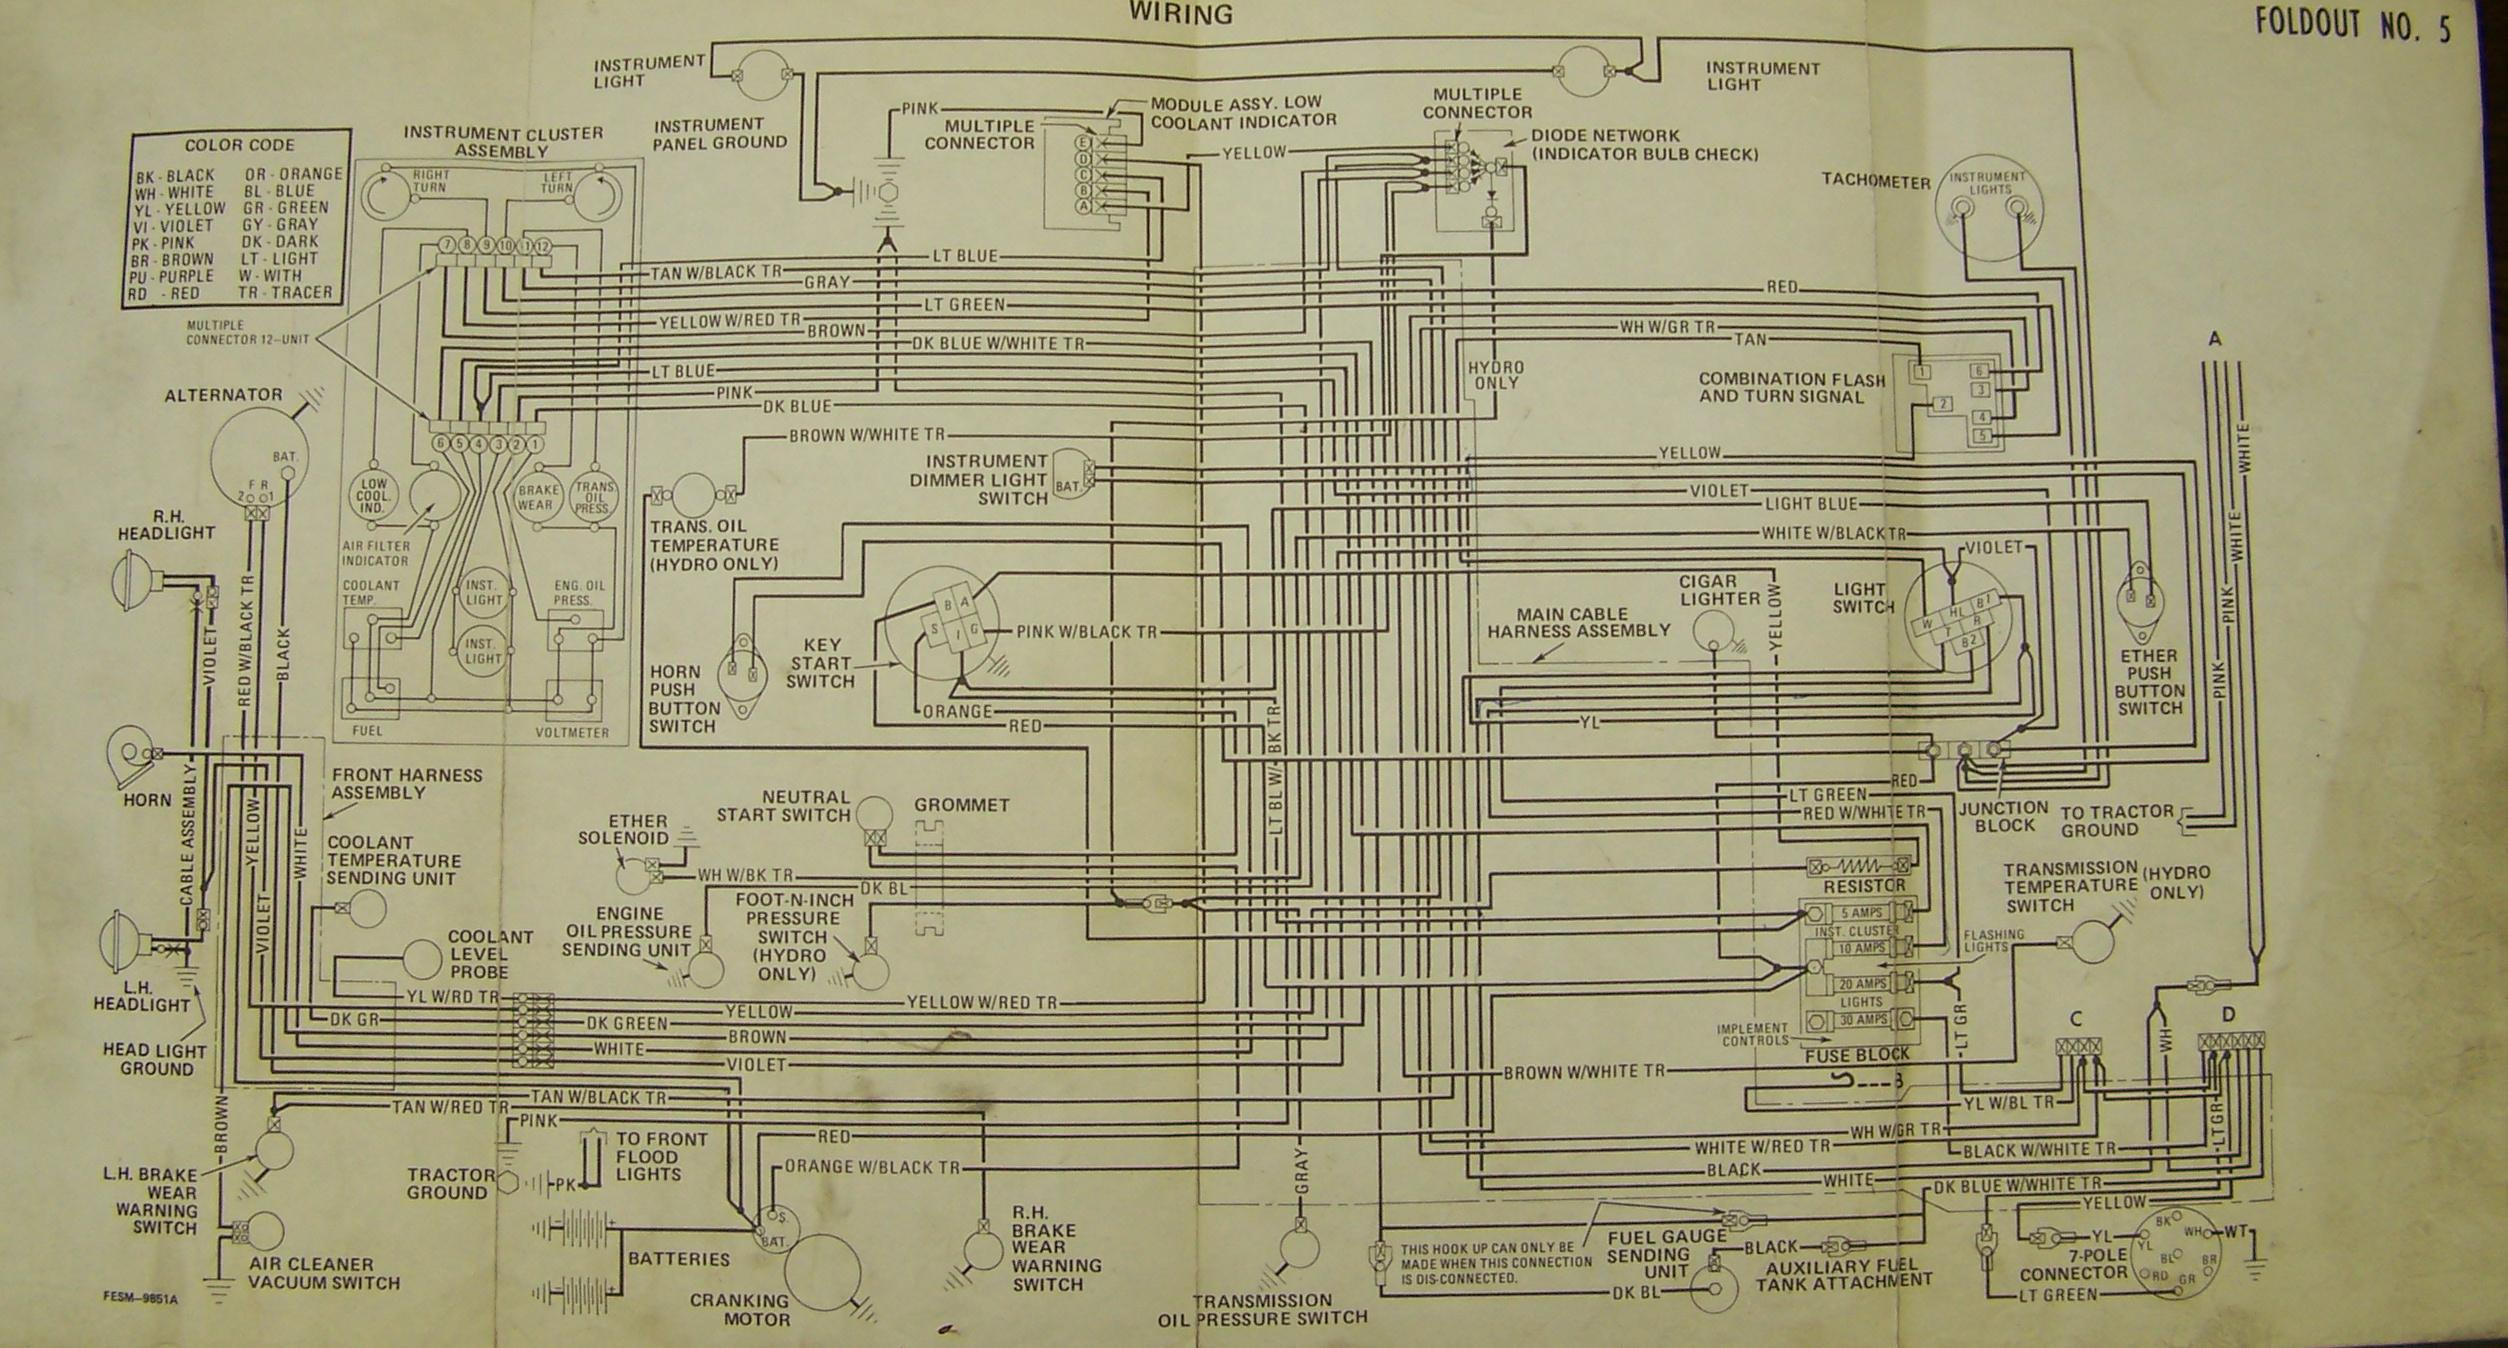 86series5 radio wiring diagram ih 1586 ih 1066 wiring diagram \u2022 wiring 1967 Chevelle Wiring Diagram at soozxer.org